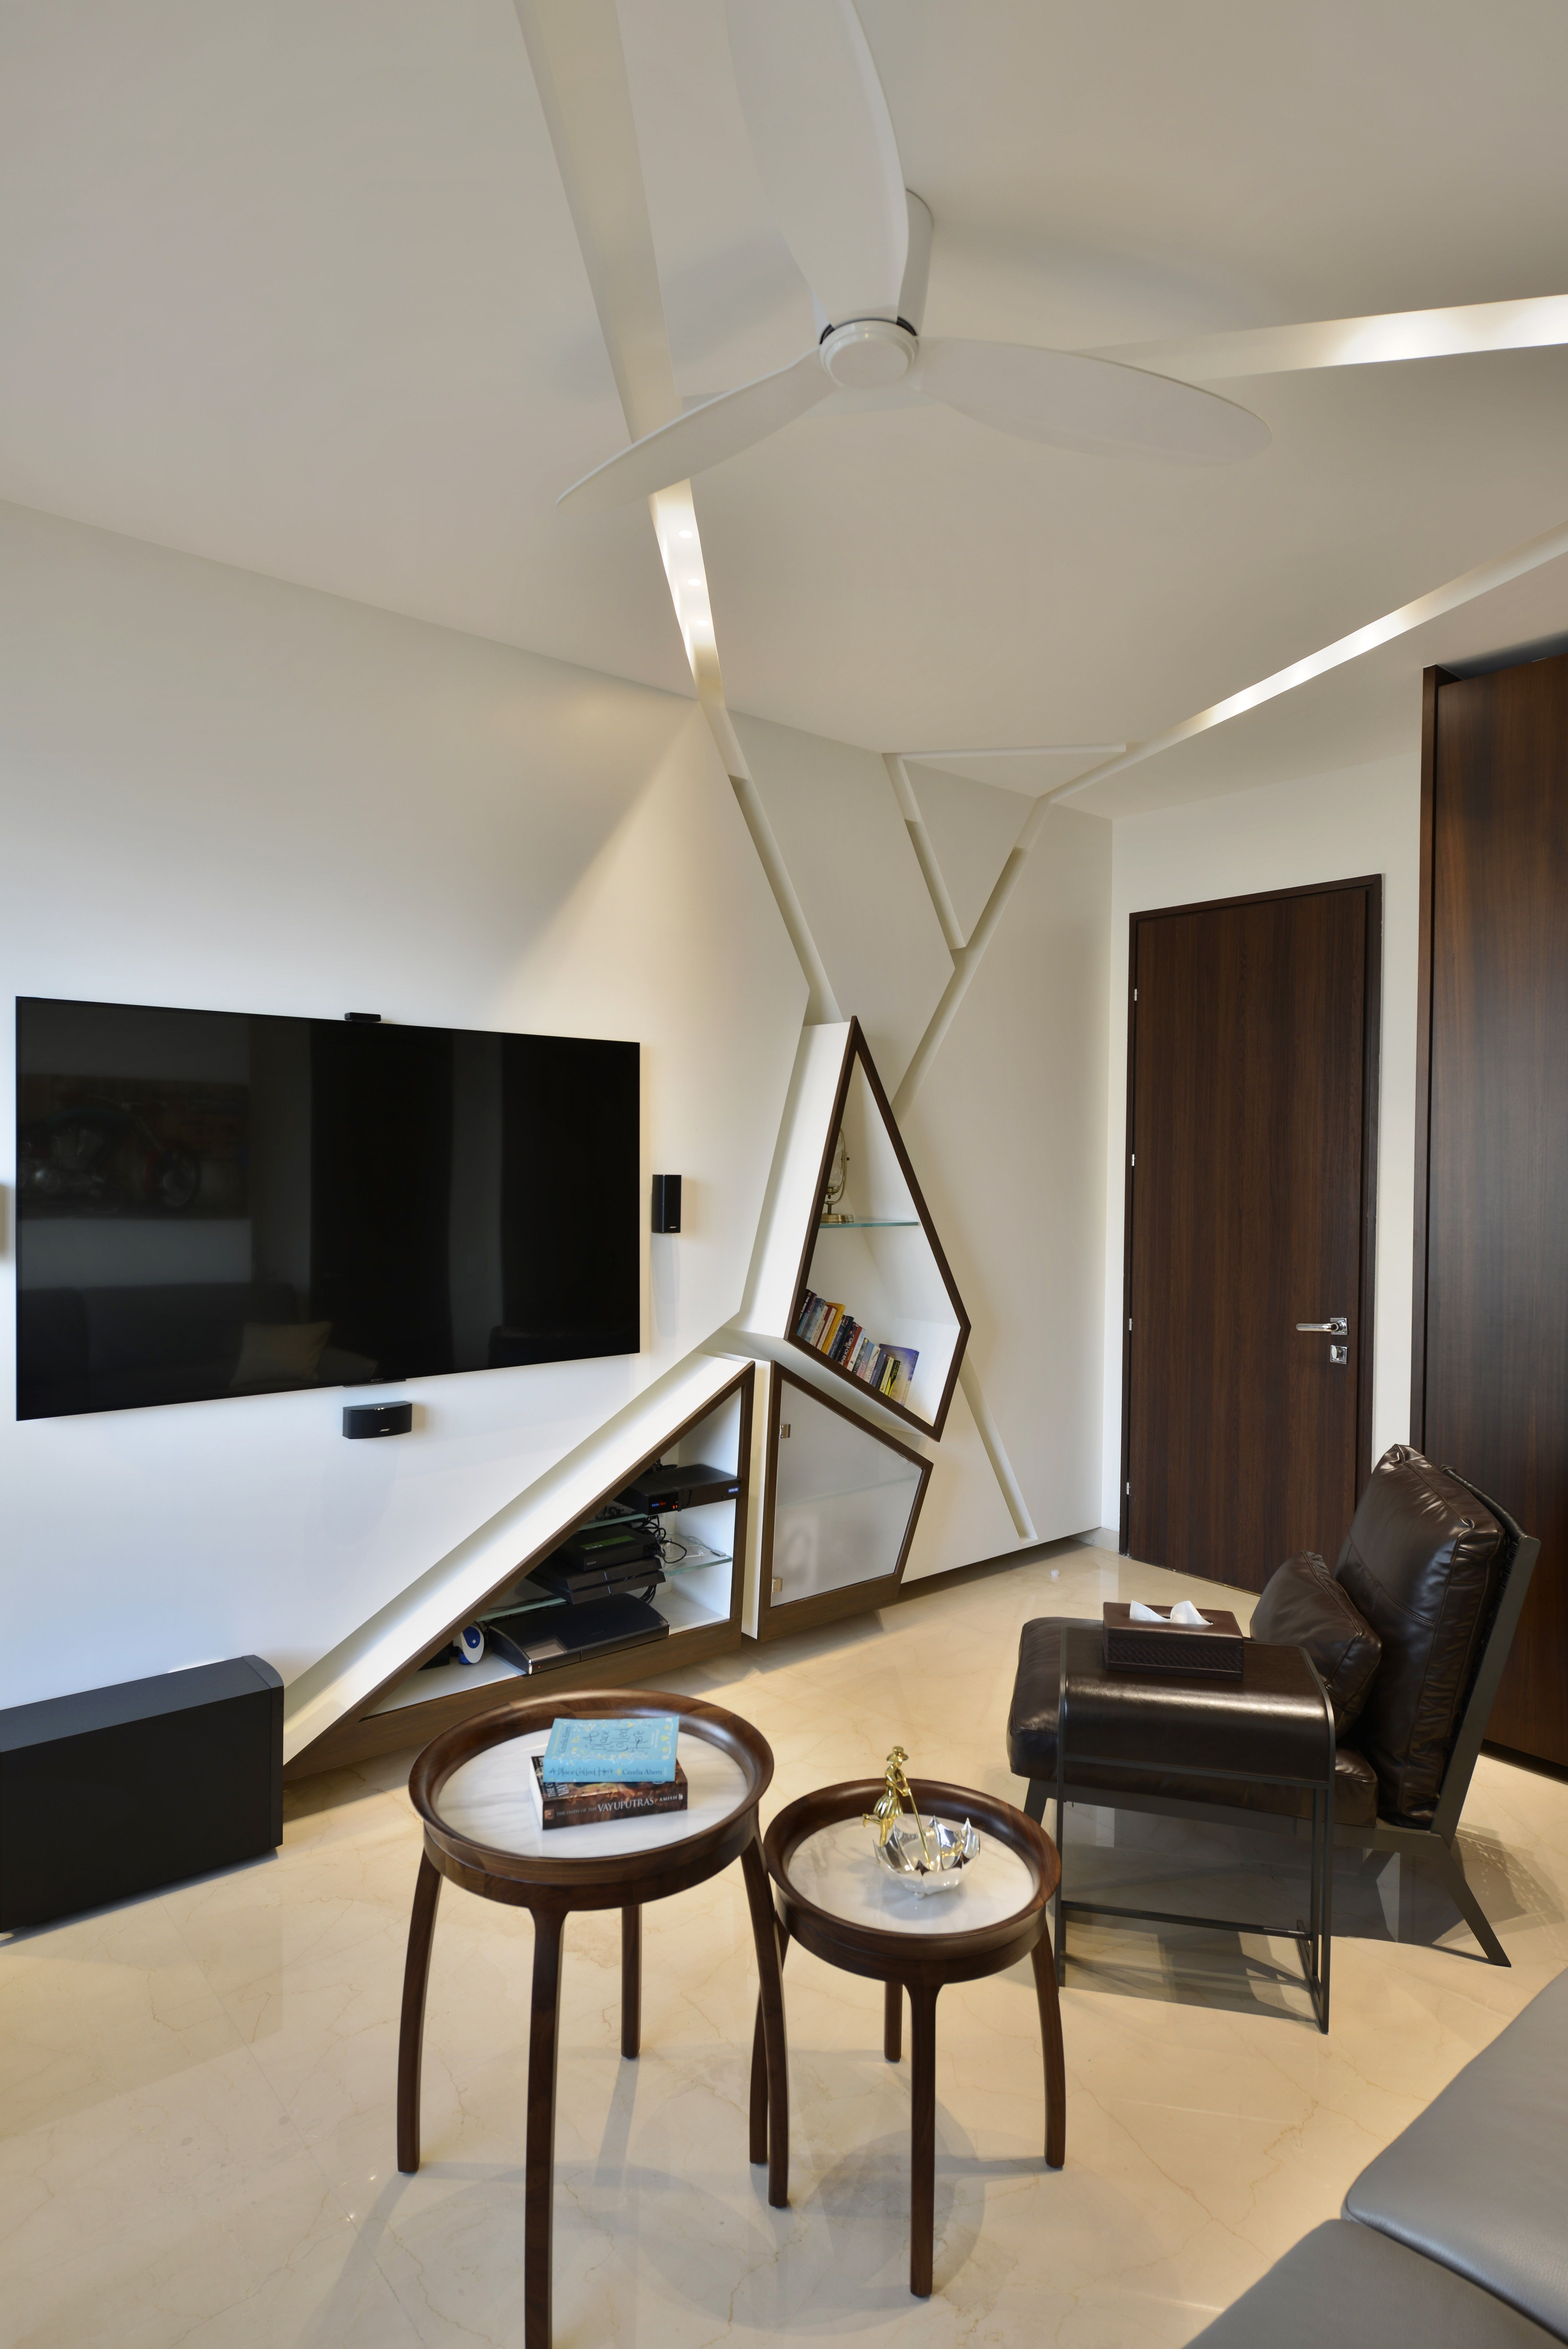 Lcd Panel Design Interior: Breaking Away From The Typical #wallpaneling And